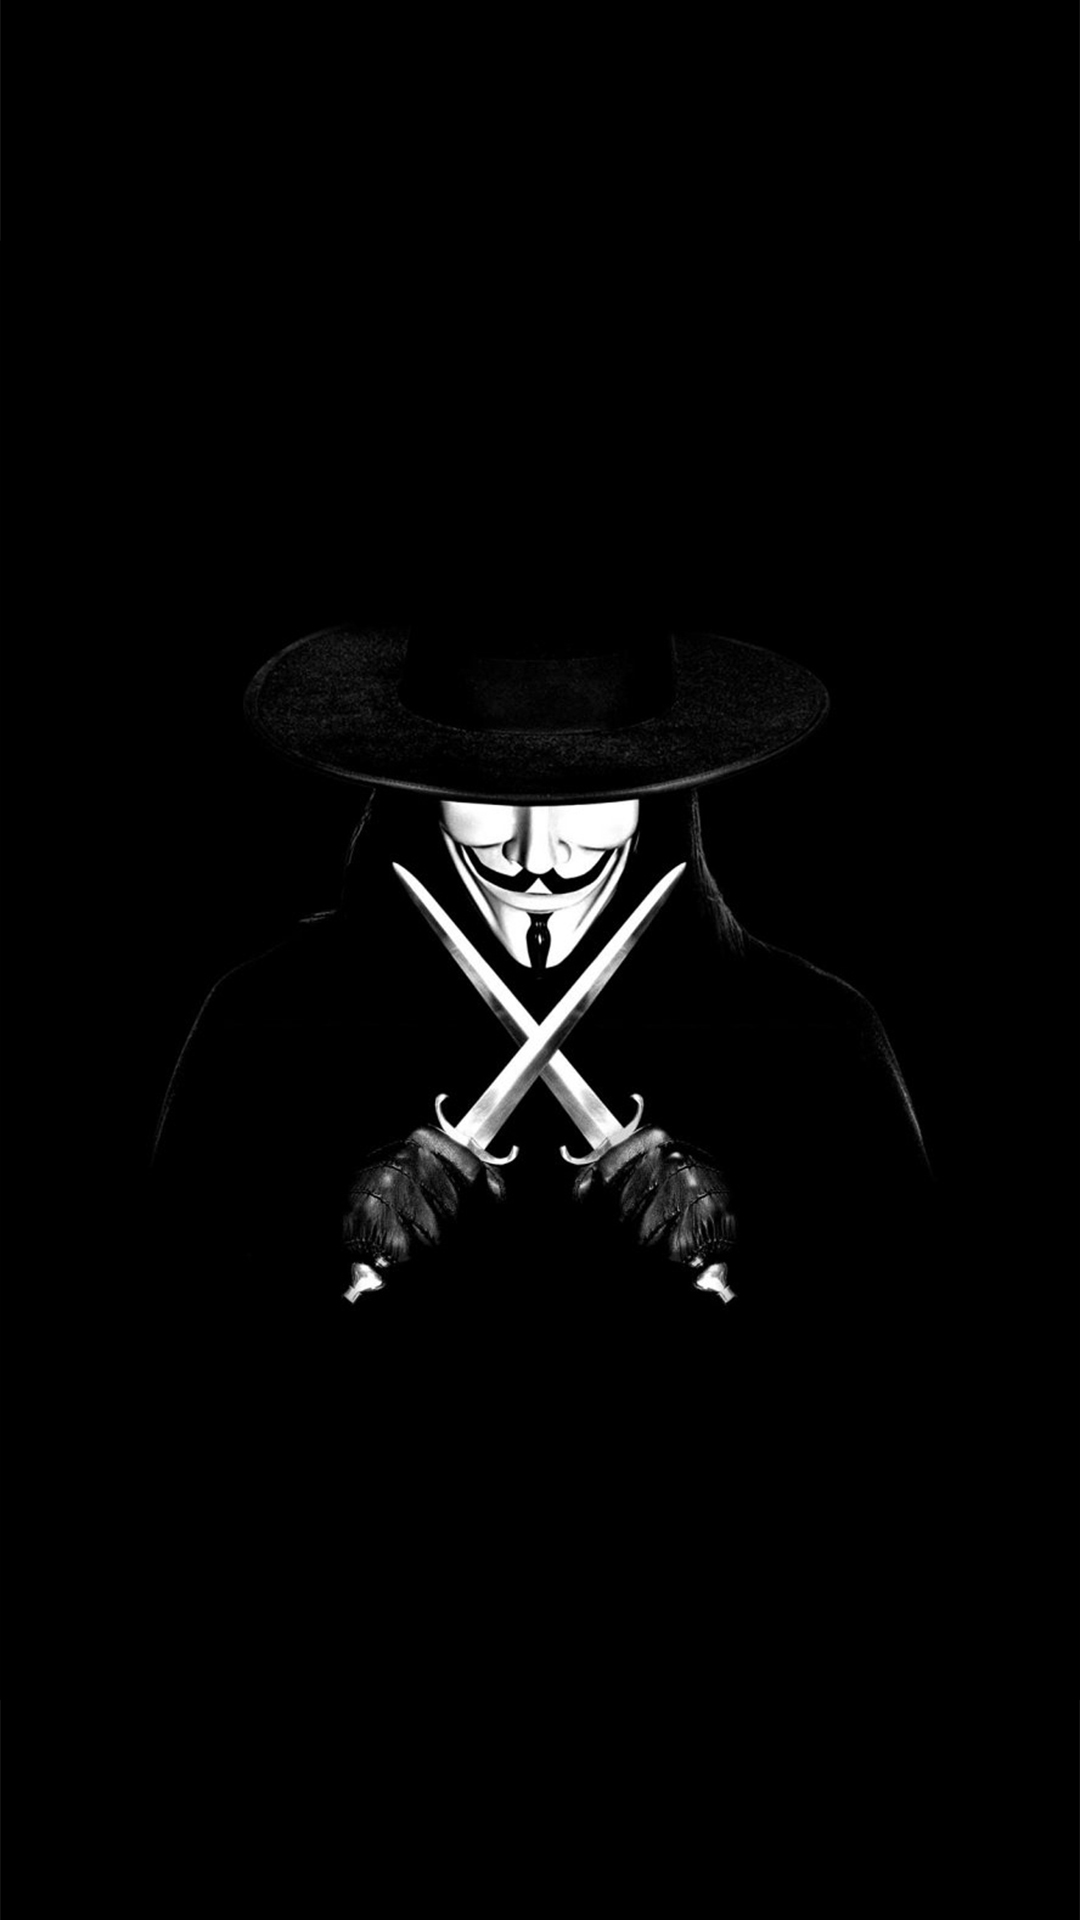 V For Vendetta Quotes Phone Wallpaper V For Vendetta Htc One Wallpaper Best Htc One Wallpapers